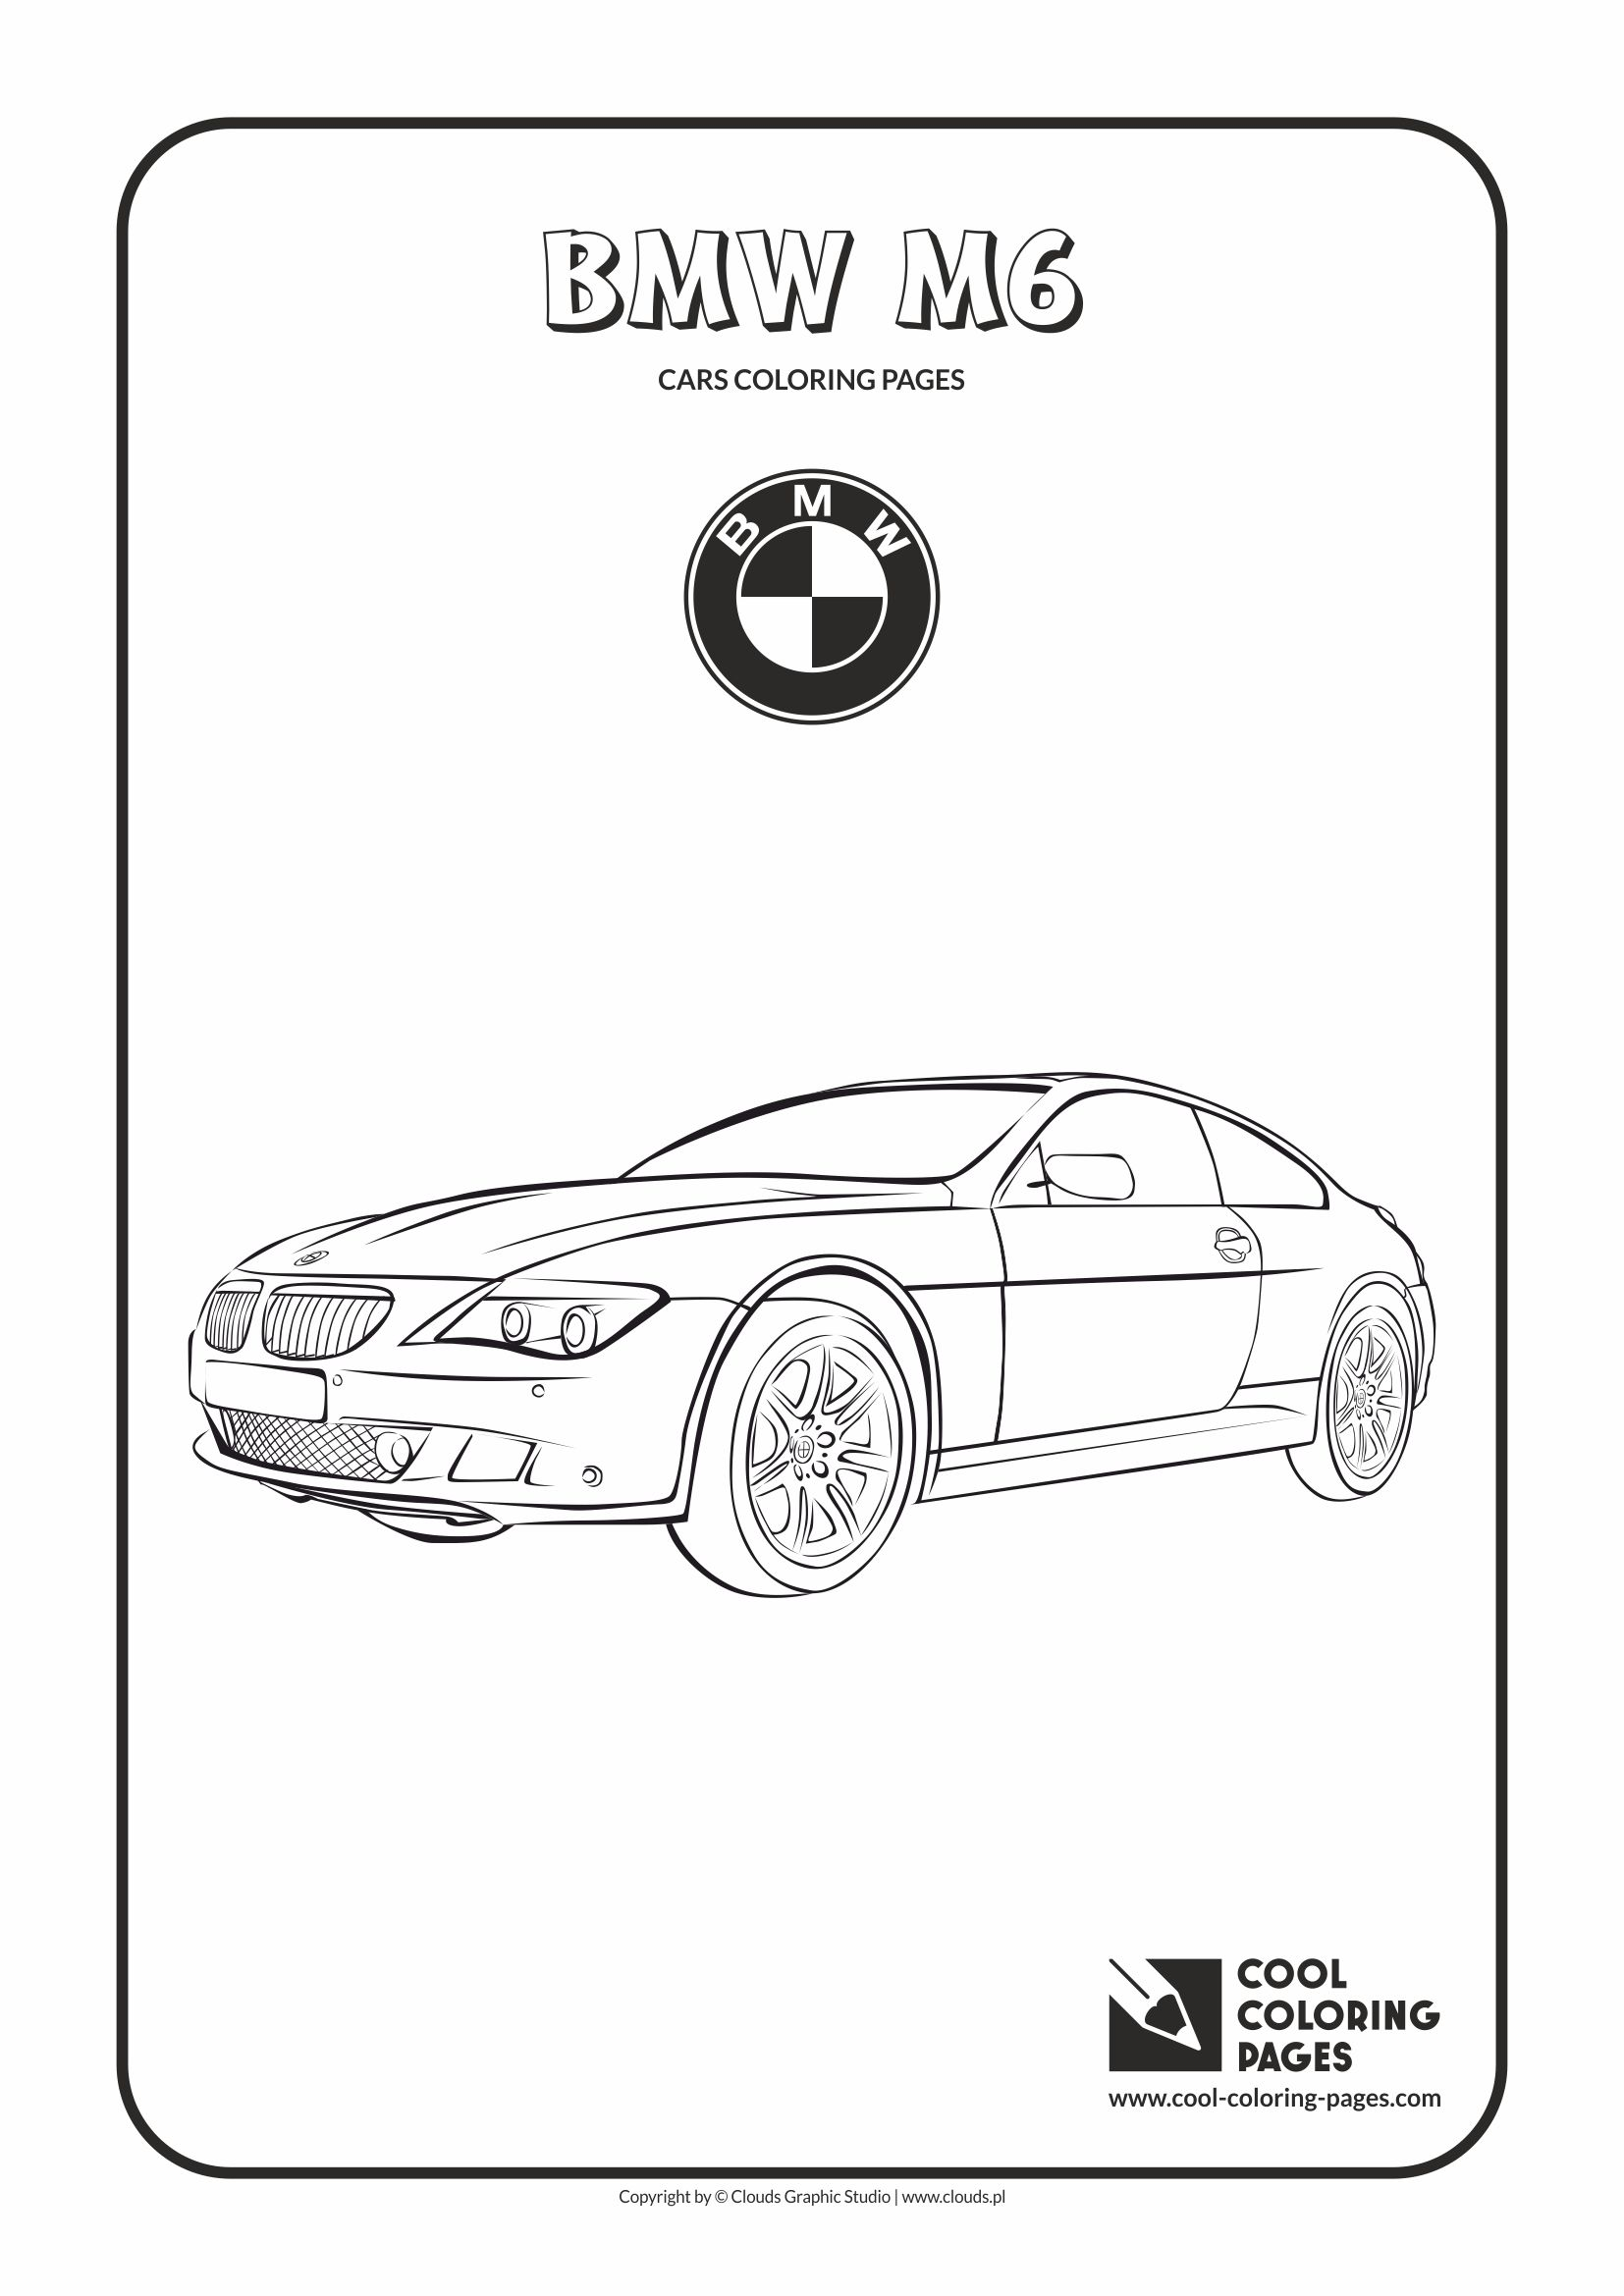 Coloring Pages Cars Bmw : Bmw logo coloring page pages